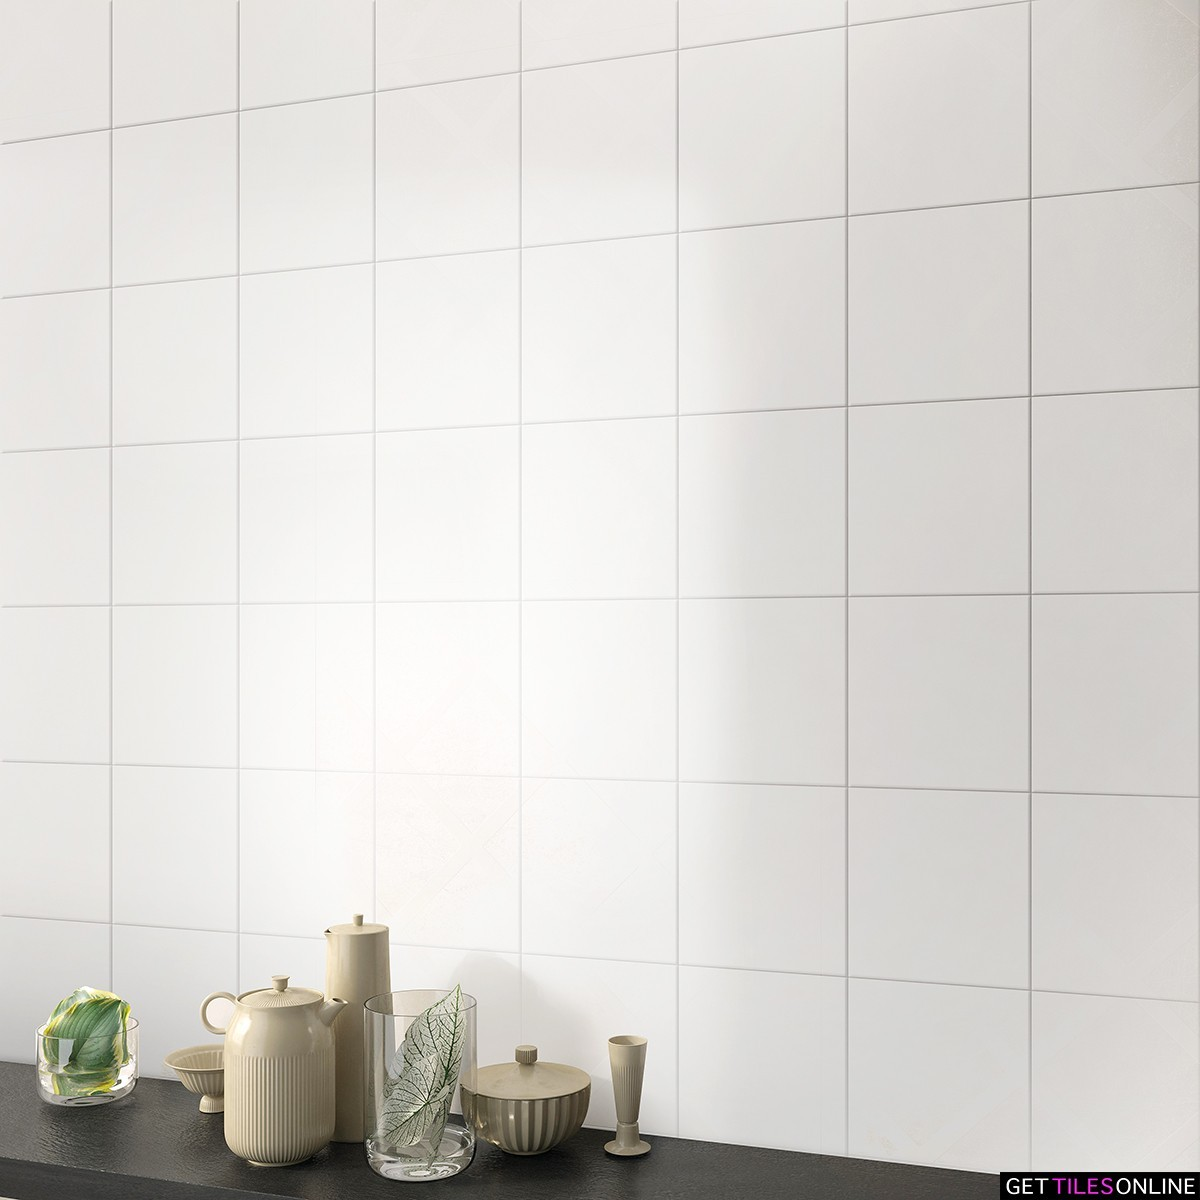 Newtown 200 Porcelain Tile 200x200 (Code:01916)